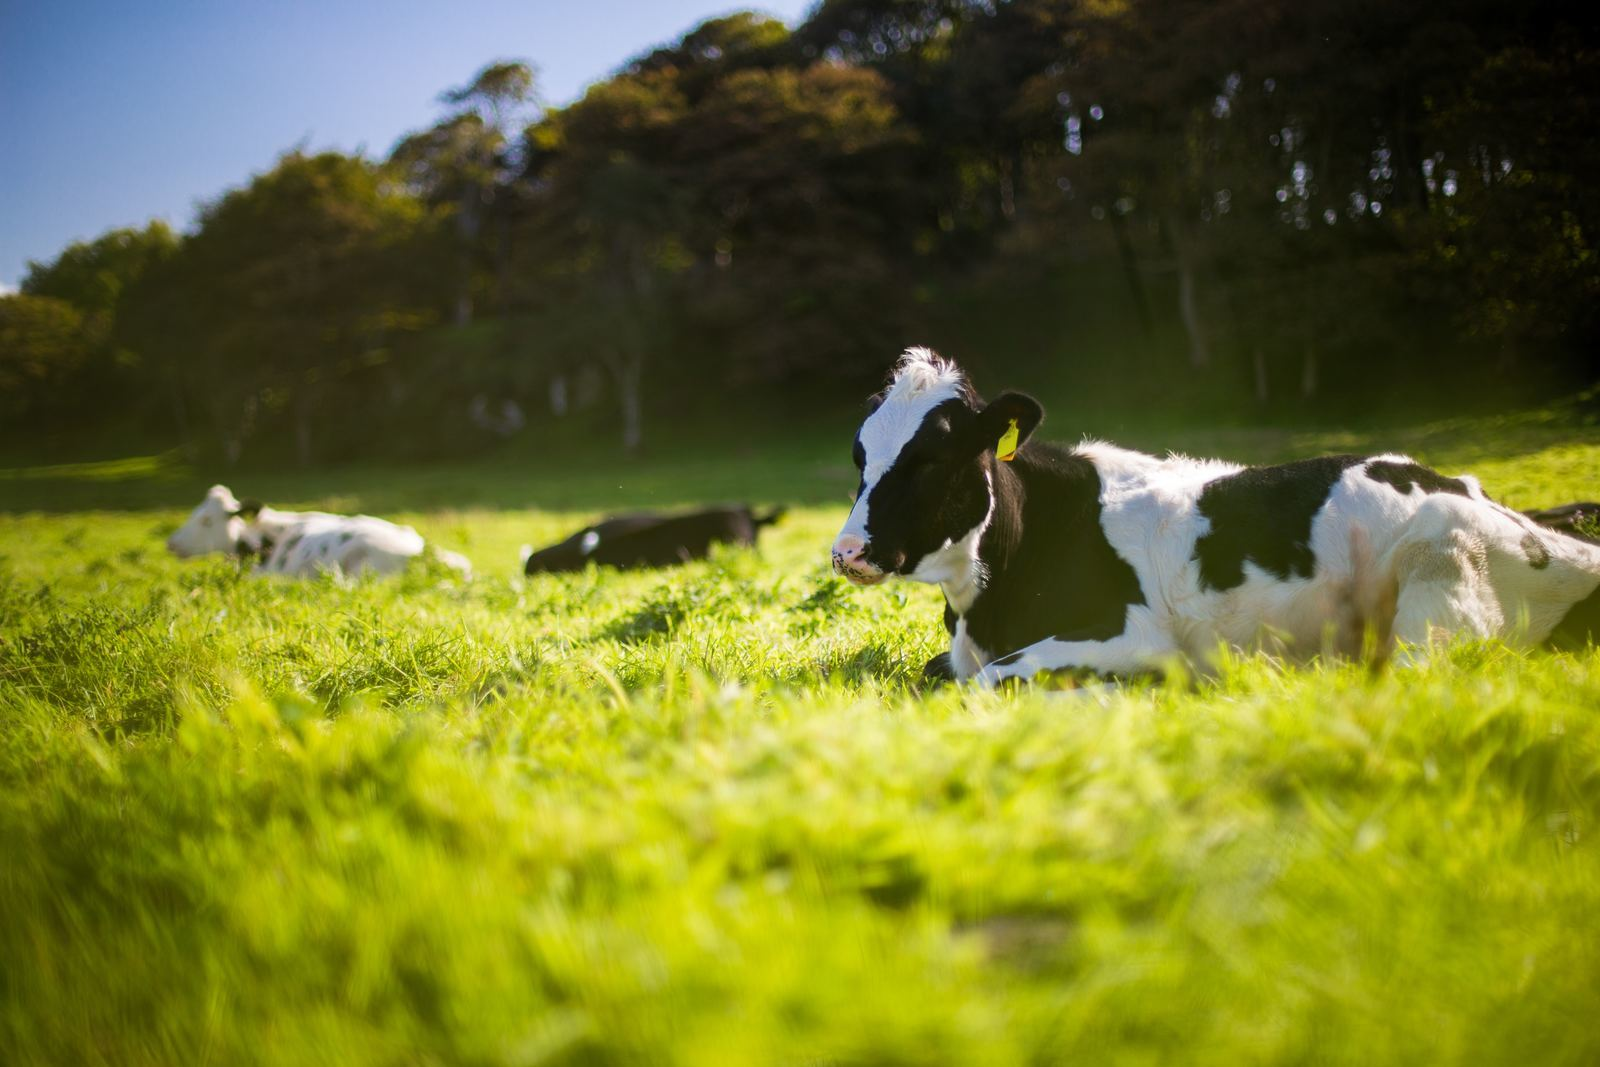 vache_vignette_agriculture2_andy-kelly-401394.jpg